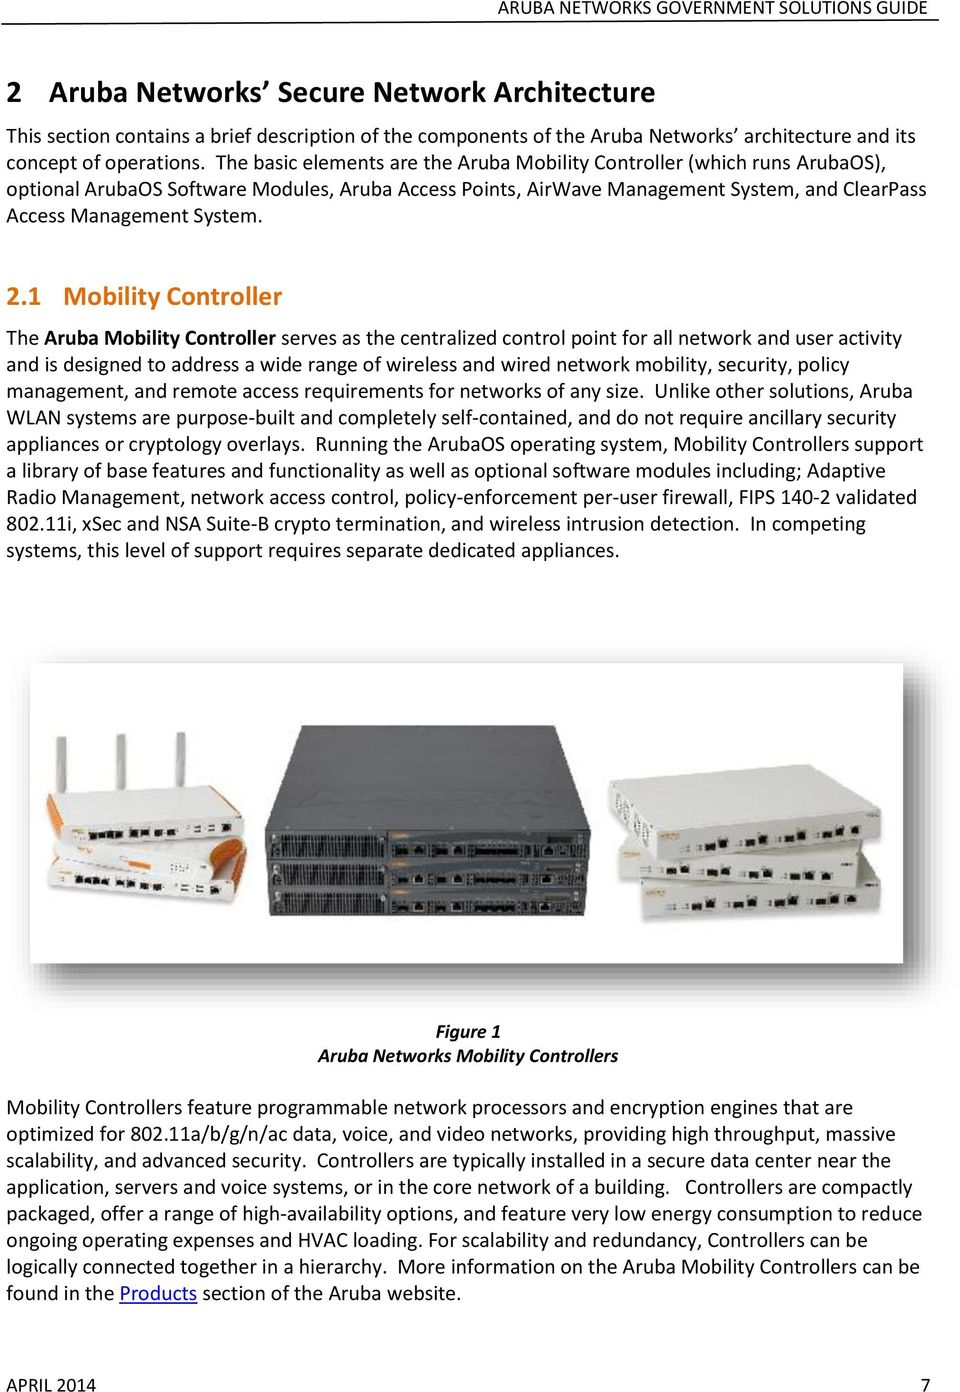 1 Mobility Controller The Aruba Mobility Controller serves as the centralized control point for all network and user activity and is designed to address a wide range of wireless and wired network